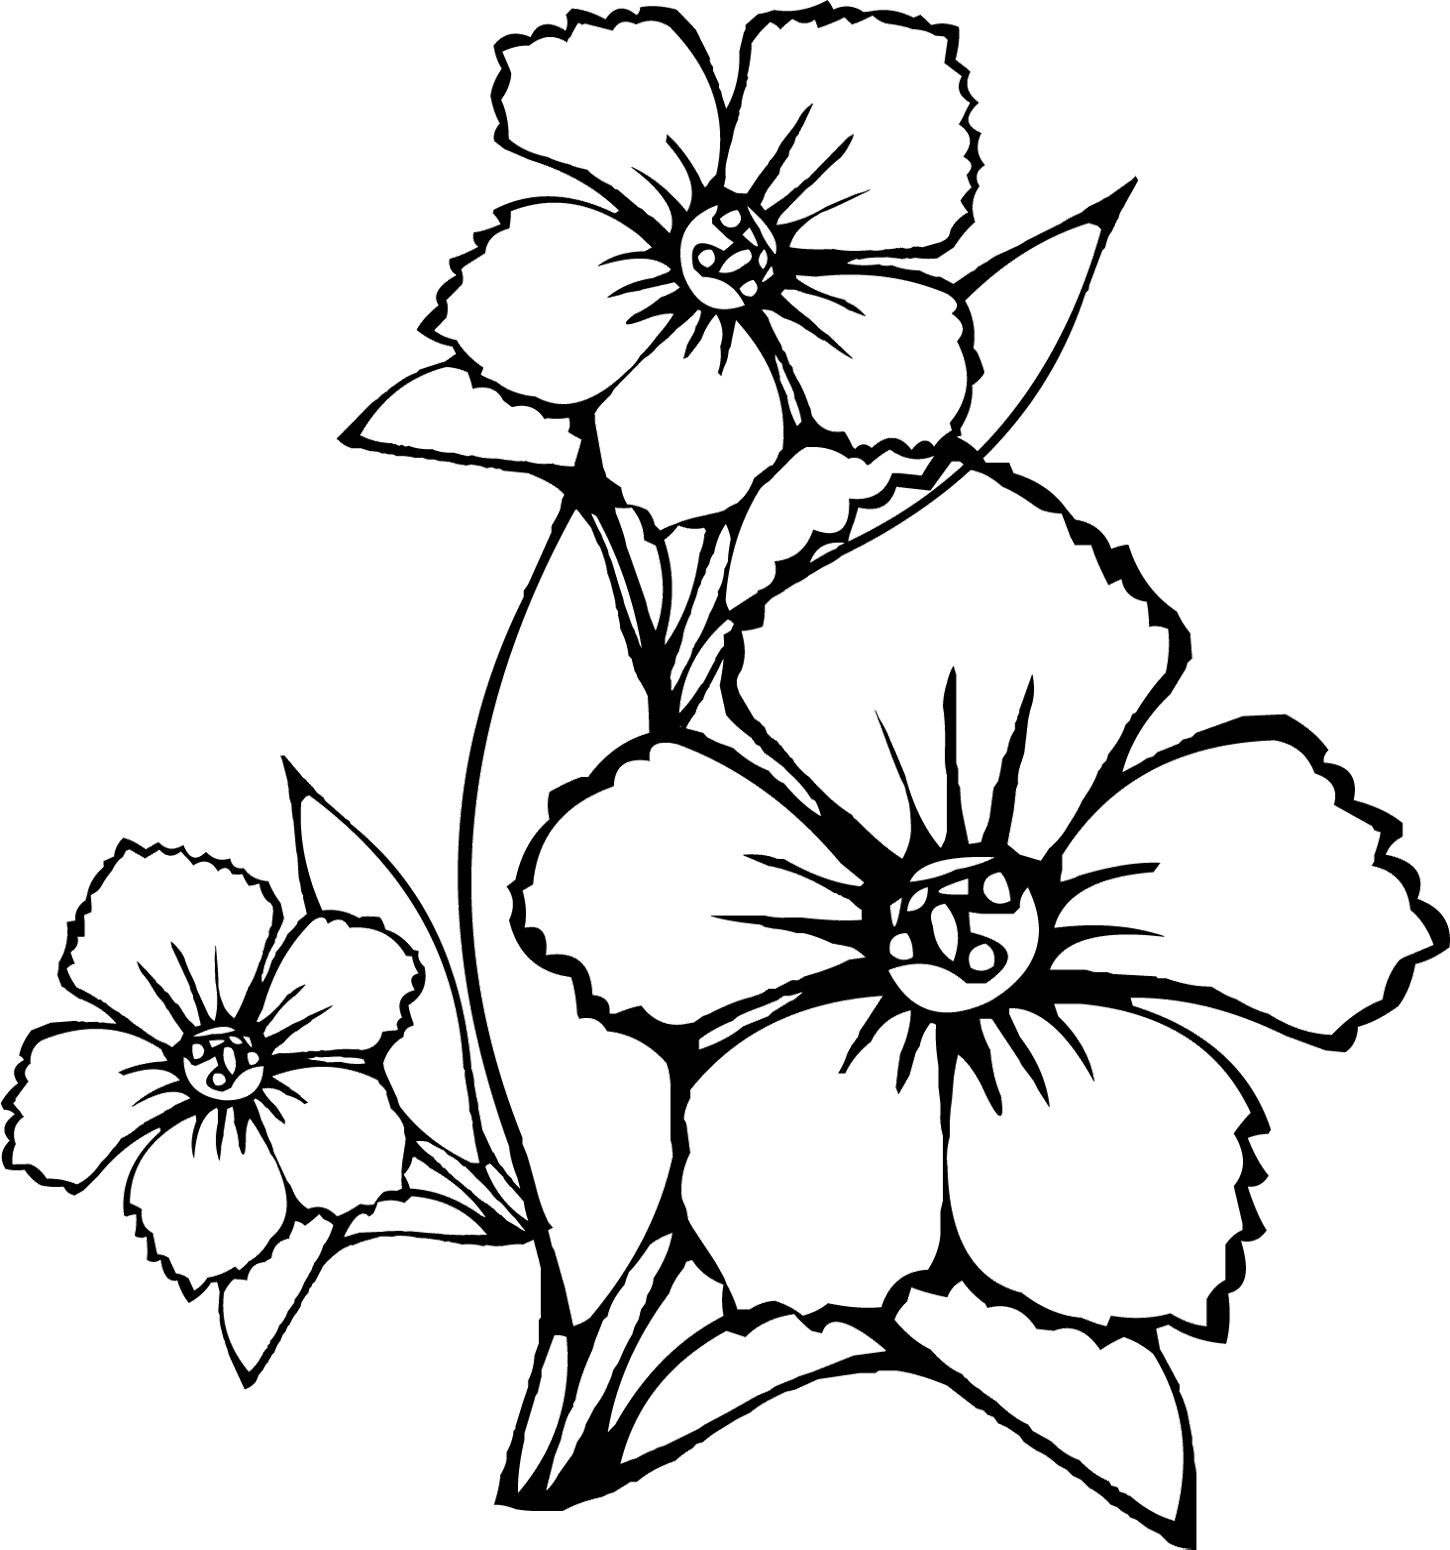 1450x1550 Awesome Free Printable Flower Coloring Pages For Kids Best